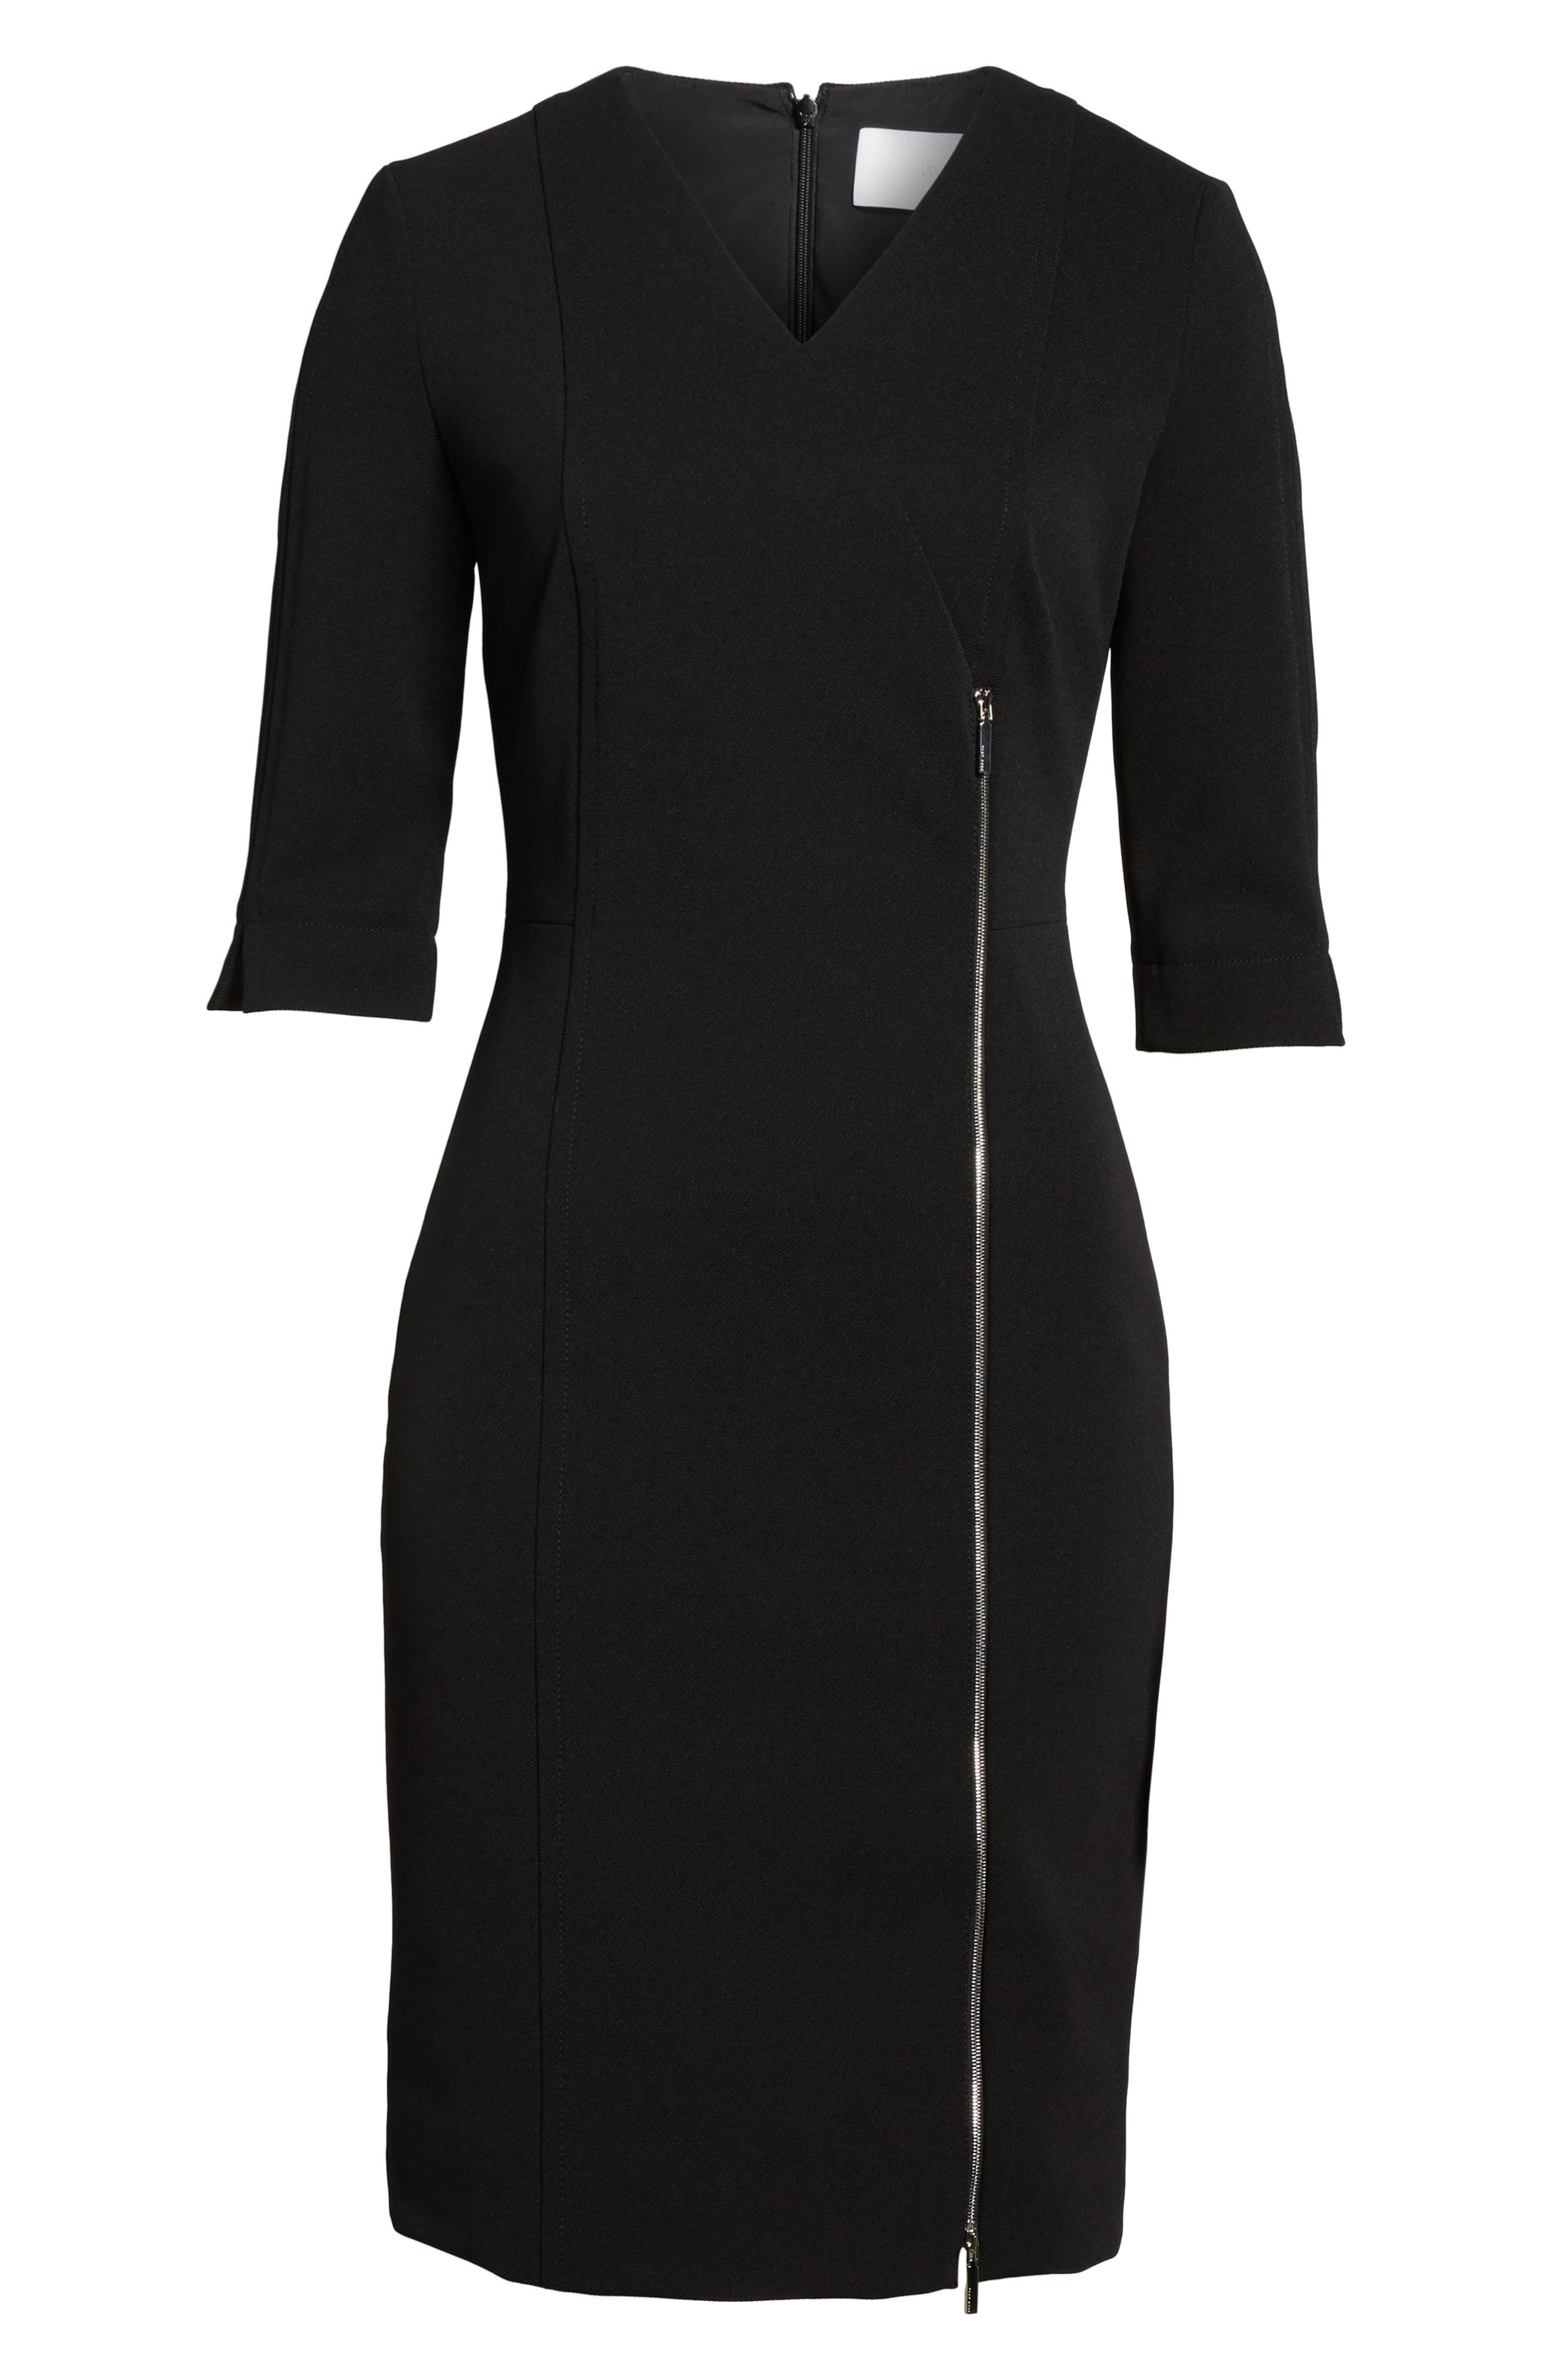 Deazema Twill Jersey Dress,                             Alternate thumbnail 6, color,                             Black